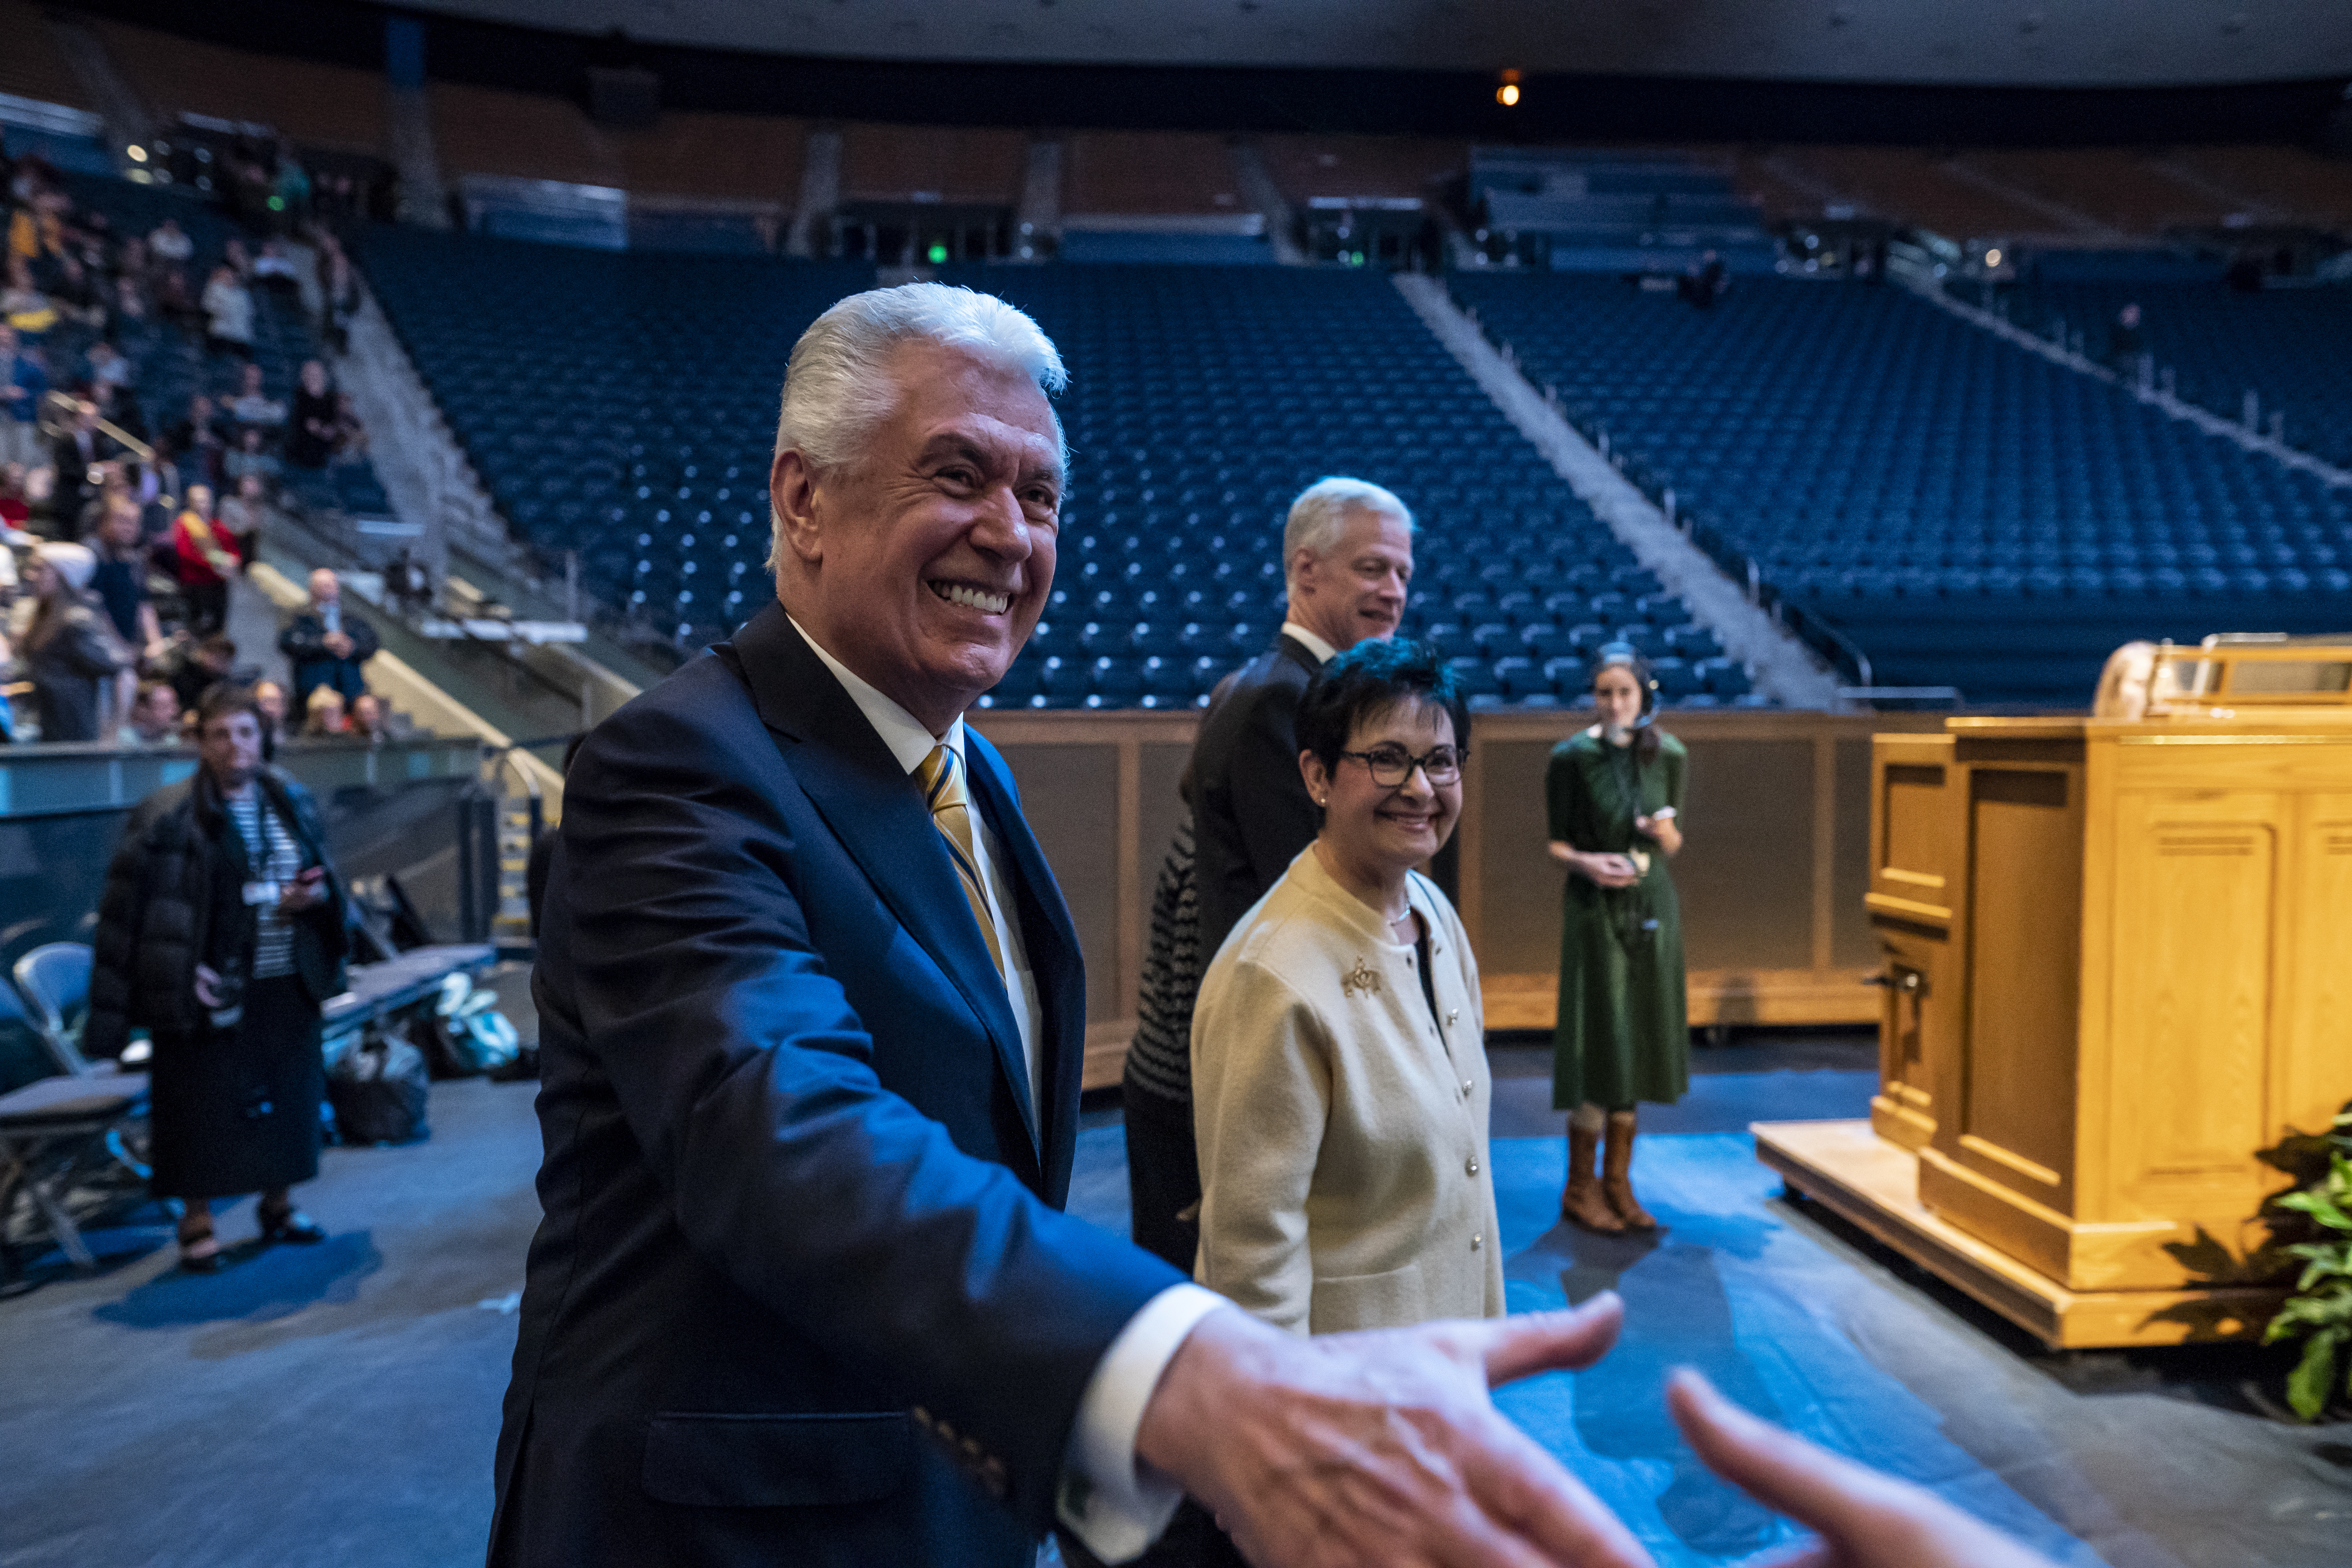 Elder Dieter F. Uchtdorf of the Quorum of the Twelve Apostles with his wife Harriet R. Uchtdorf prior to a devotional on the BYU campus in Provo, Utah on Tuesday, Jan. 15, 2019.